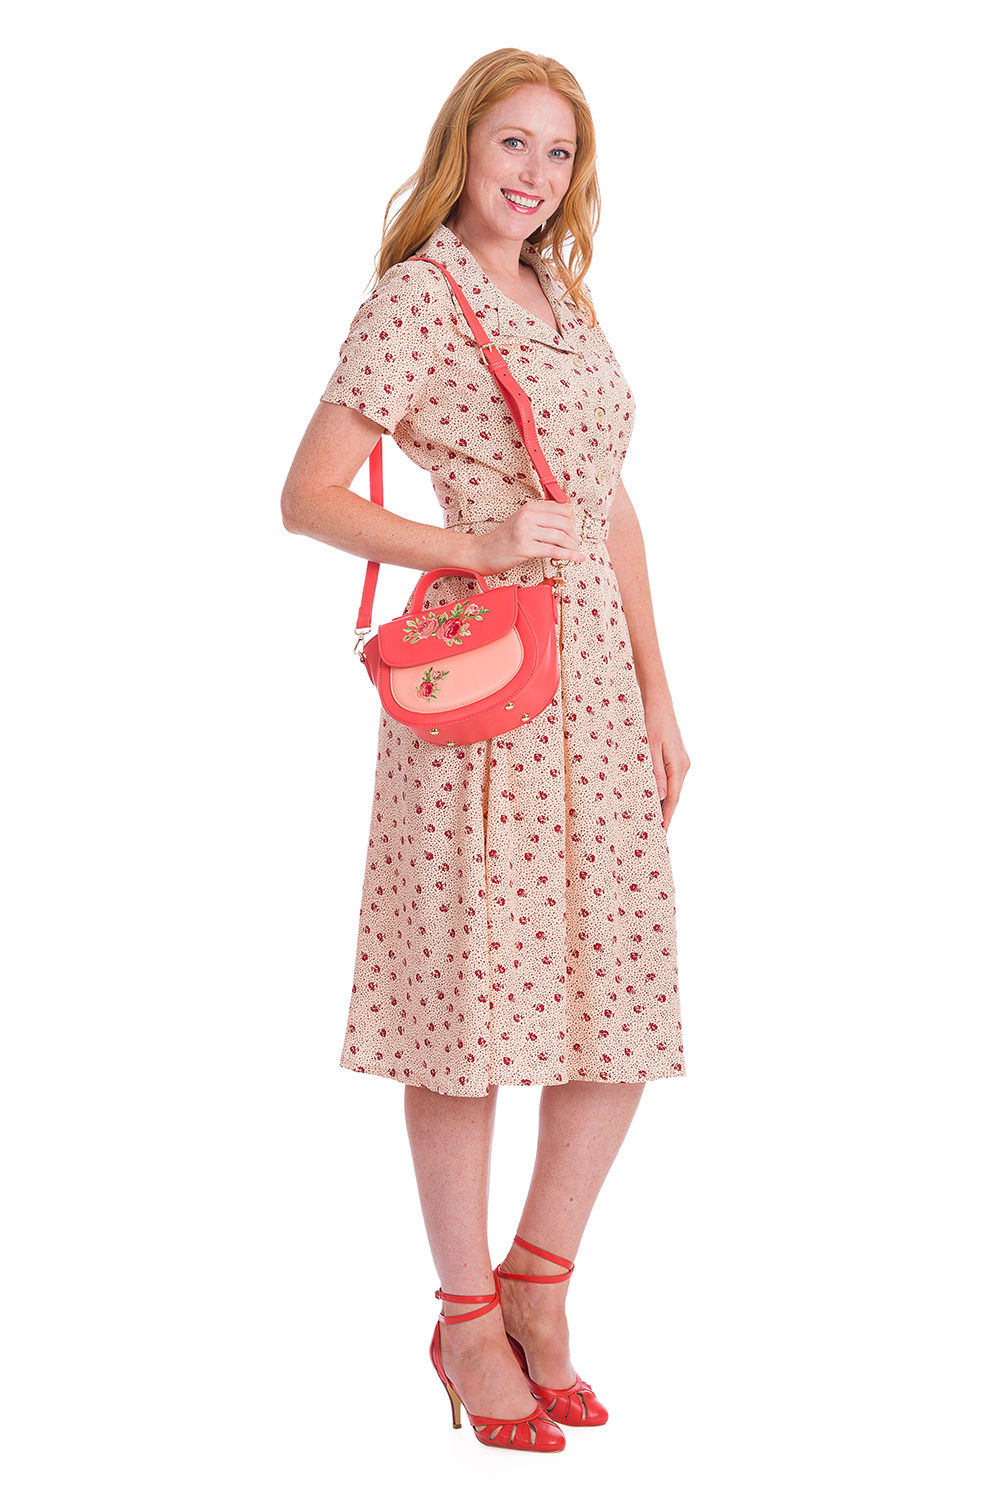 Banned Retro 40s Lady Pearl Swing Cream Floral Dress